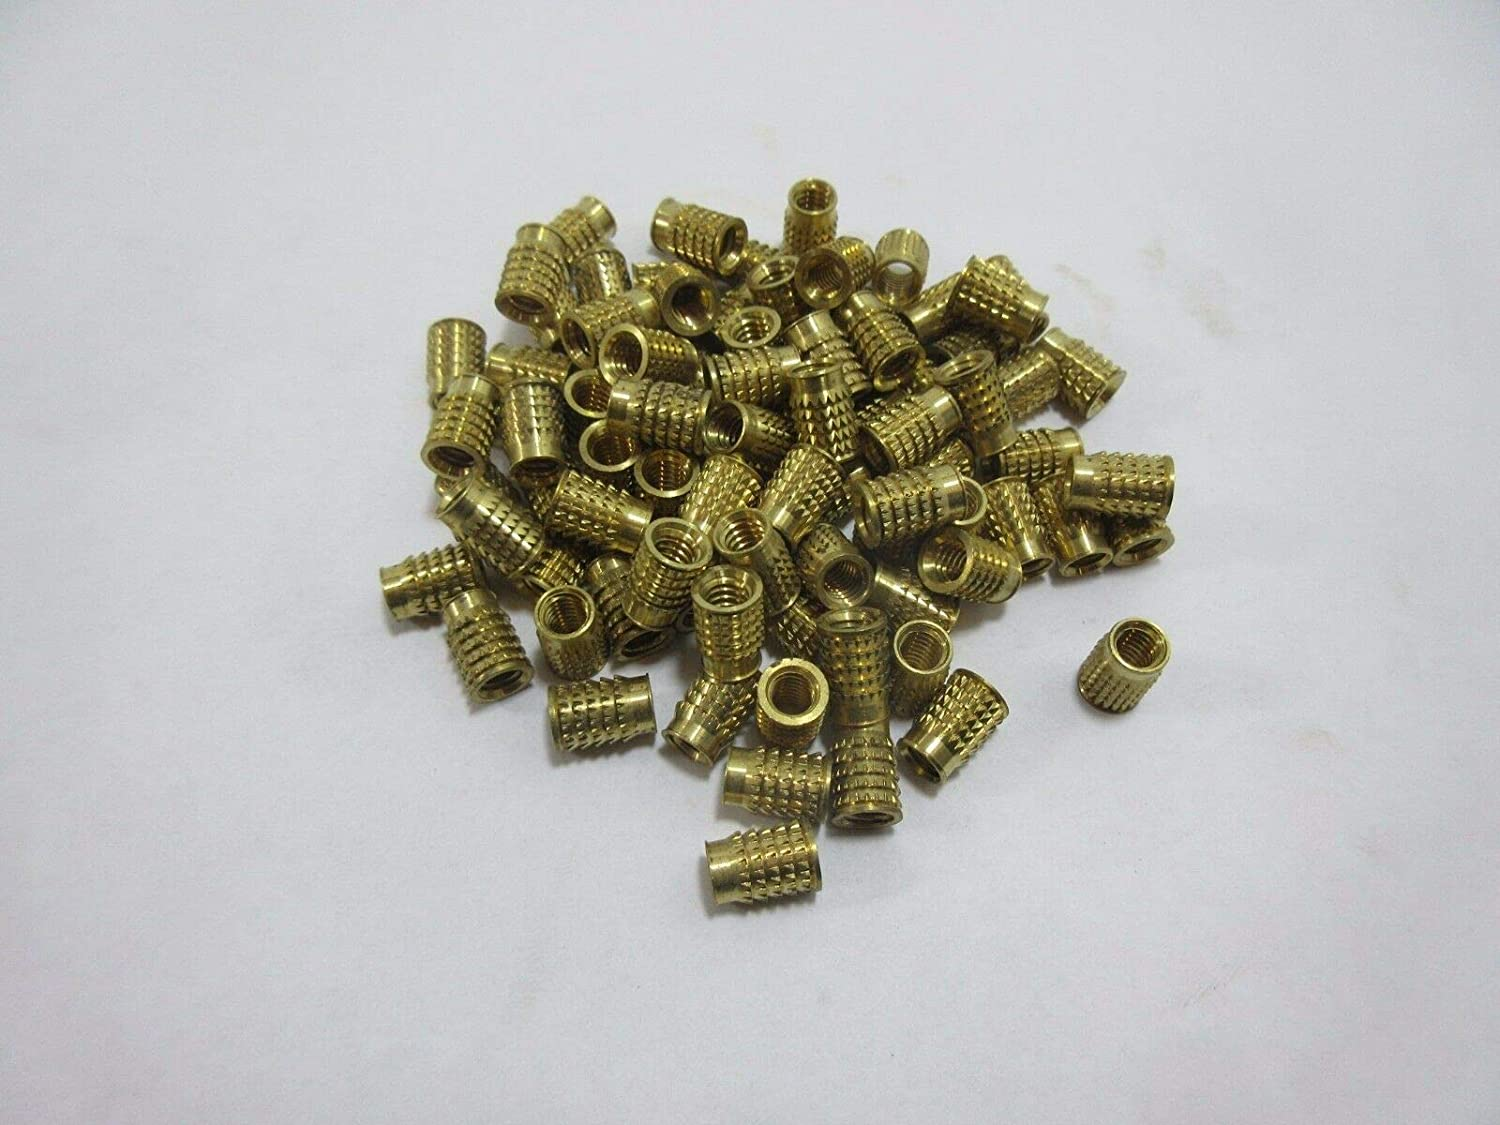 1//4-20 Brass Push in Threaded Insert 0.5 Long 10 pcs